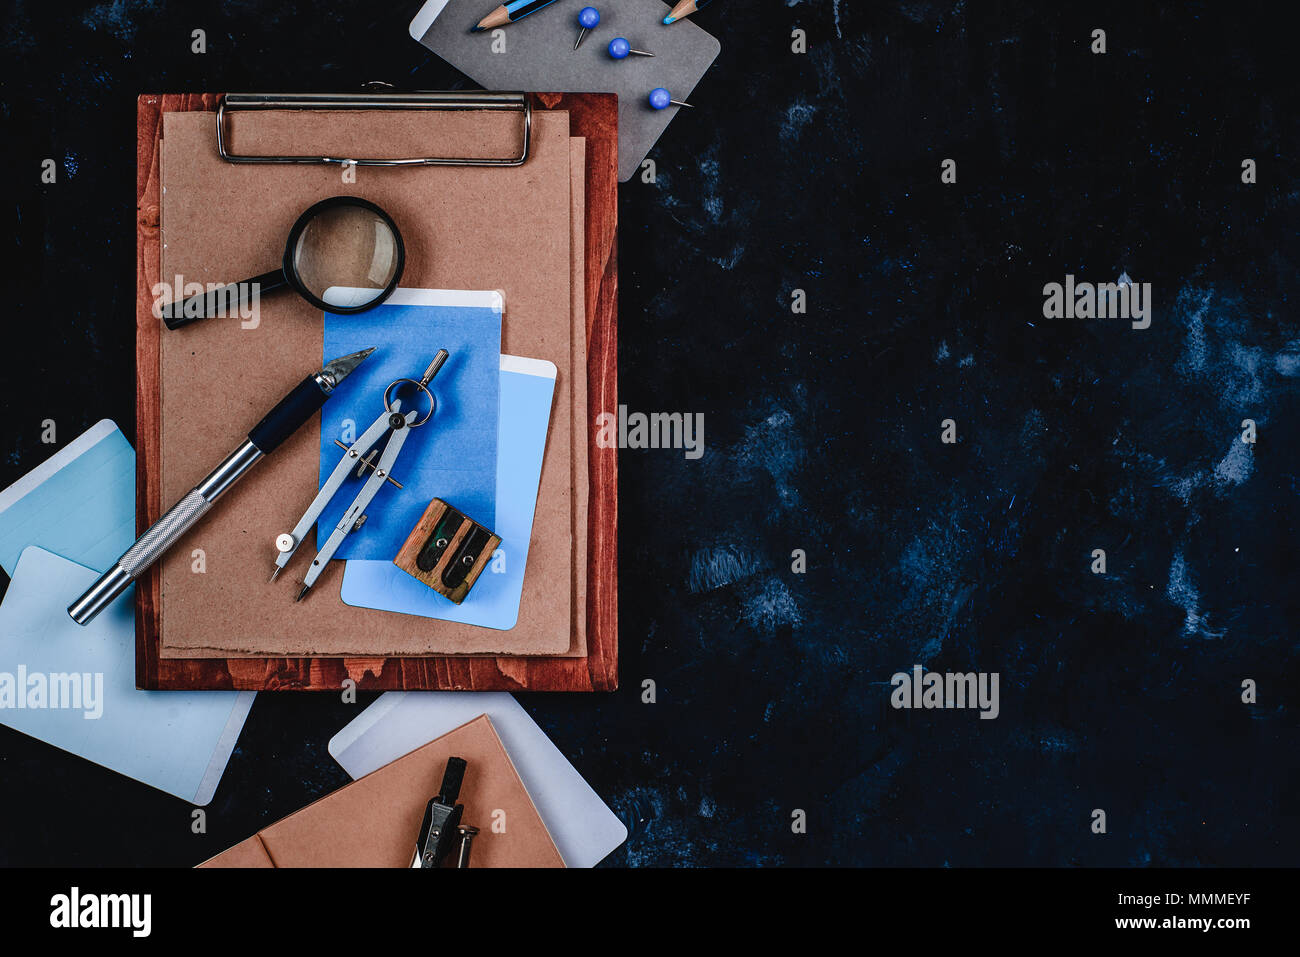 Clipboard with craft paper and sketches on a designer workplace. Sketches, compasses, rulers, clipboards and pencils in an architect or interior desig - Stock Image